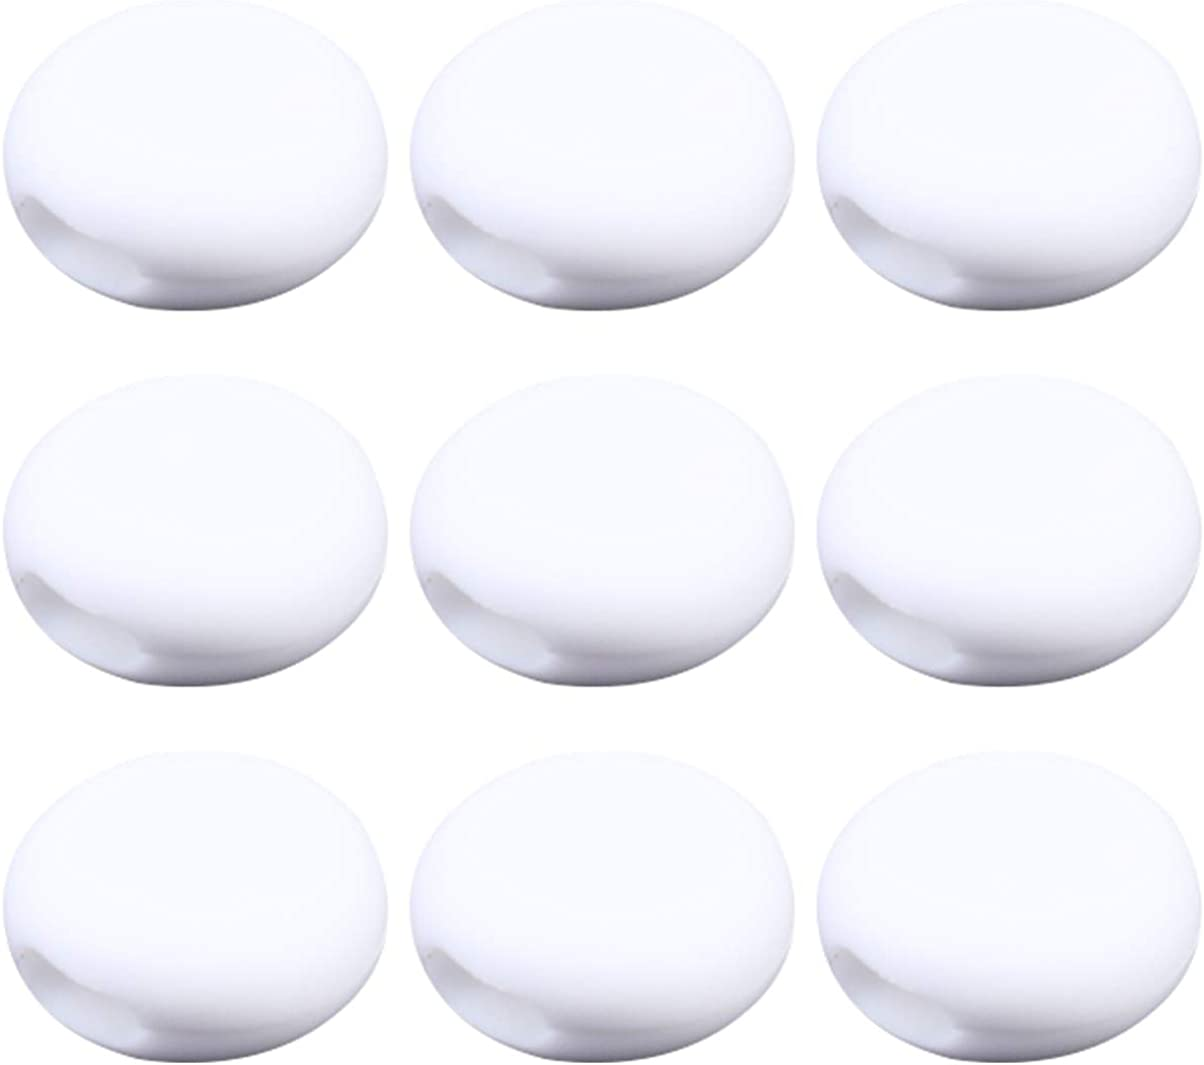 EXCEART 100Pcs Silicone Cord Locks End Stopper Fastener Slider Toggle Adjustable Buckle for DIY Face Cover Making